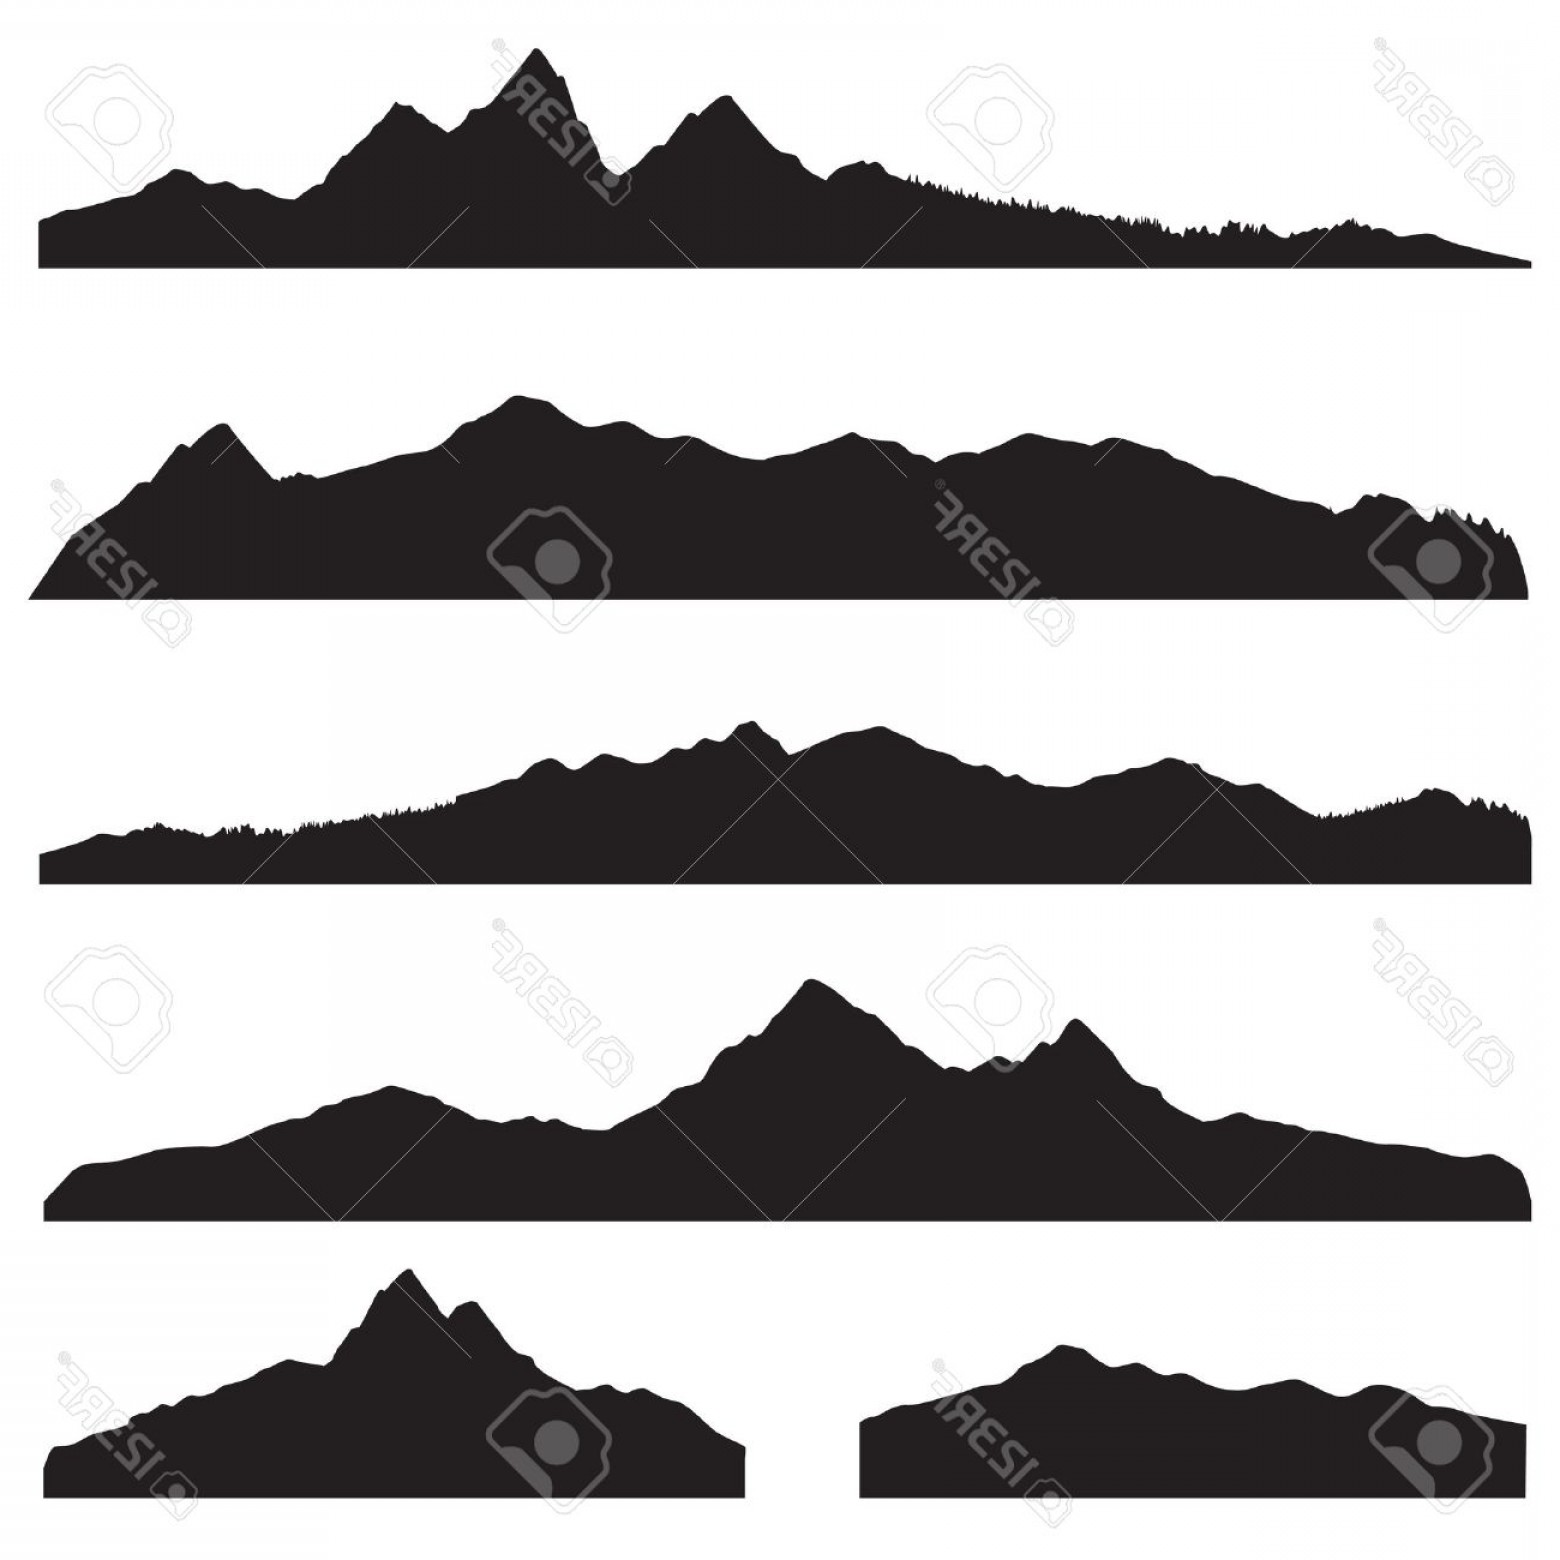 1560x1560 Photostock Vector Mountains Landscape Silhouette Set Abstract High